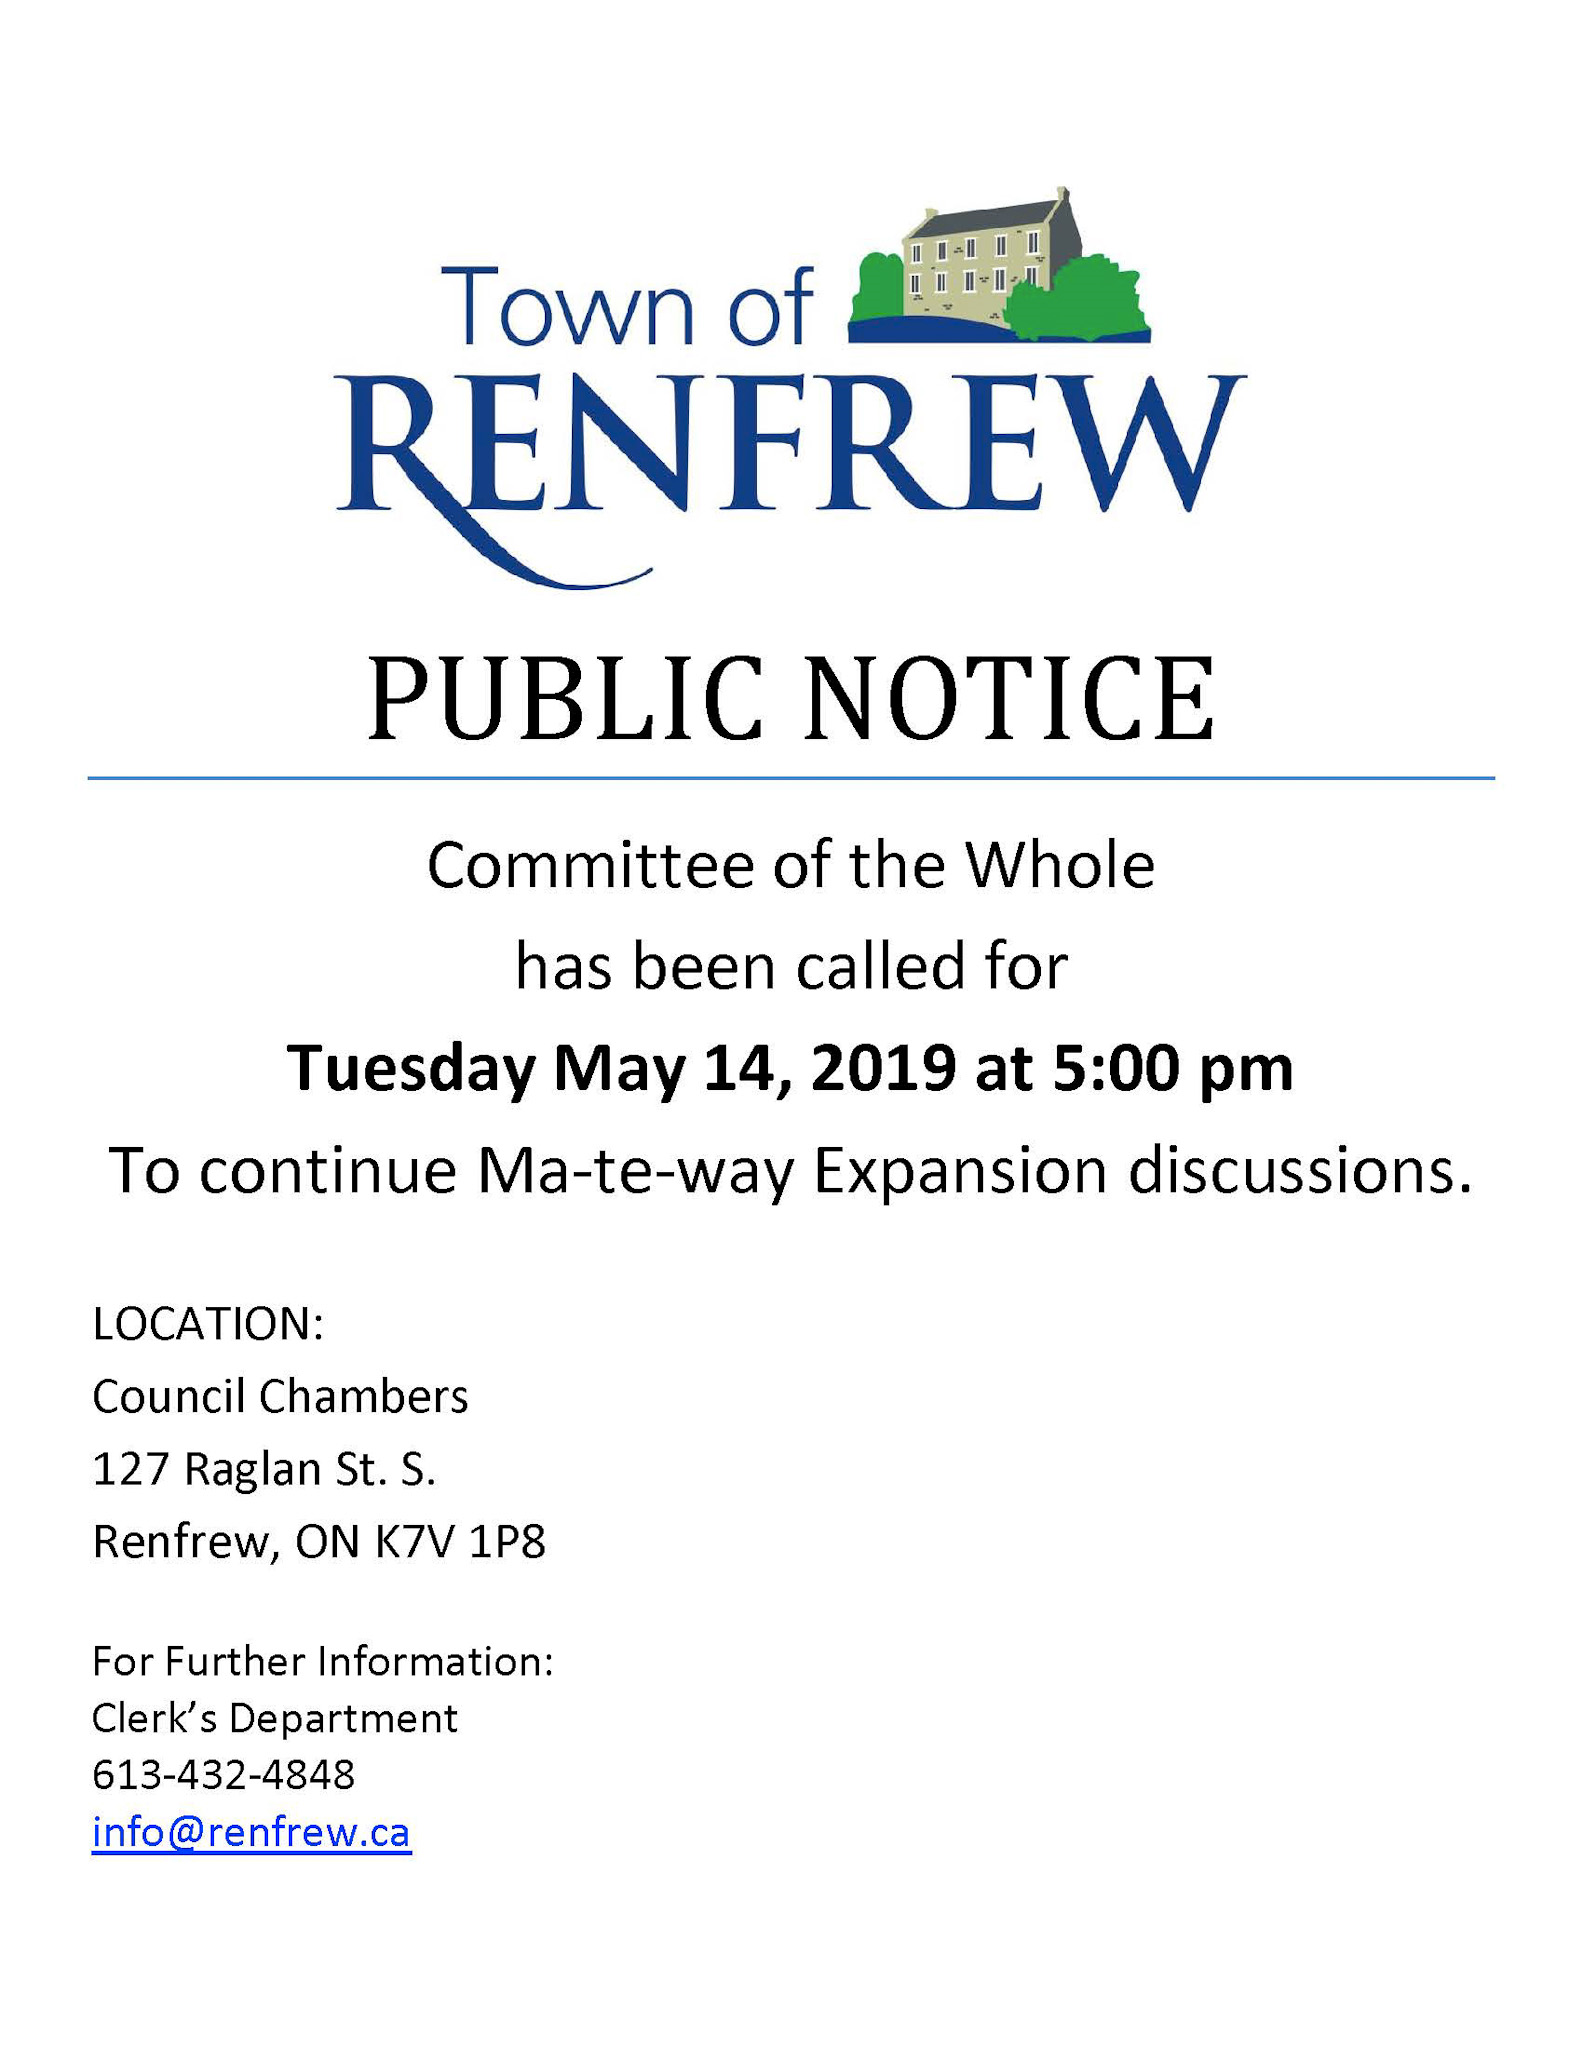 Ma-te-way Expansion Discussions -  Committee of the Whole Meeting May 14, 2019 5:00 p.m.